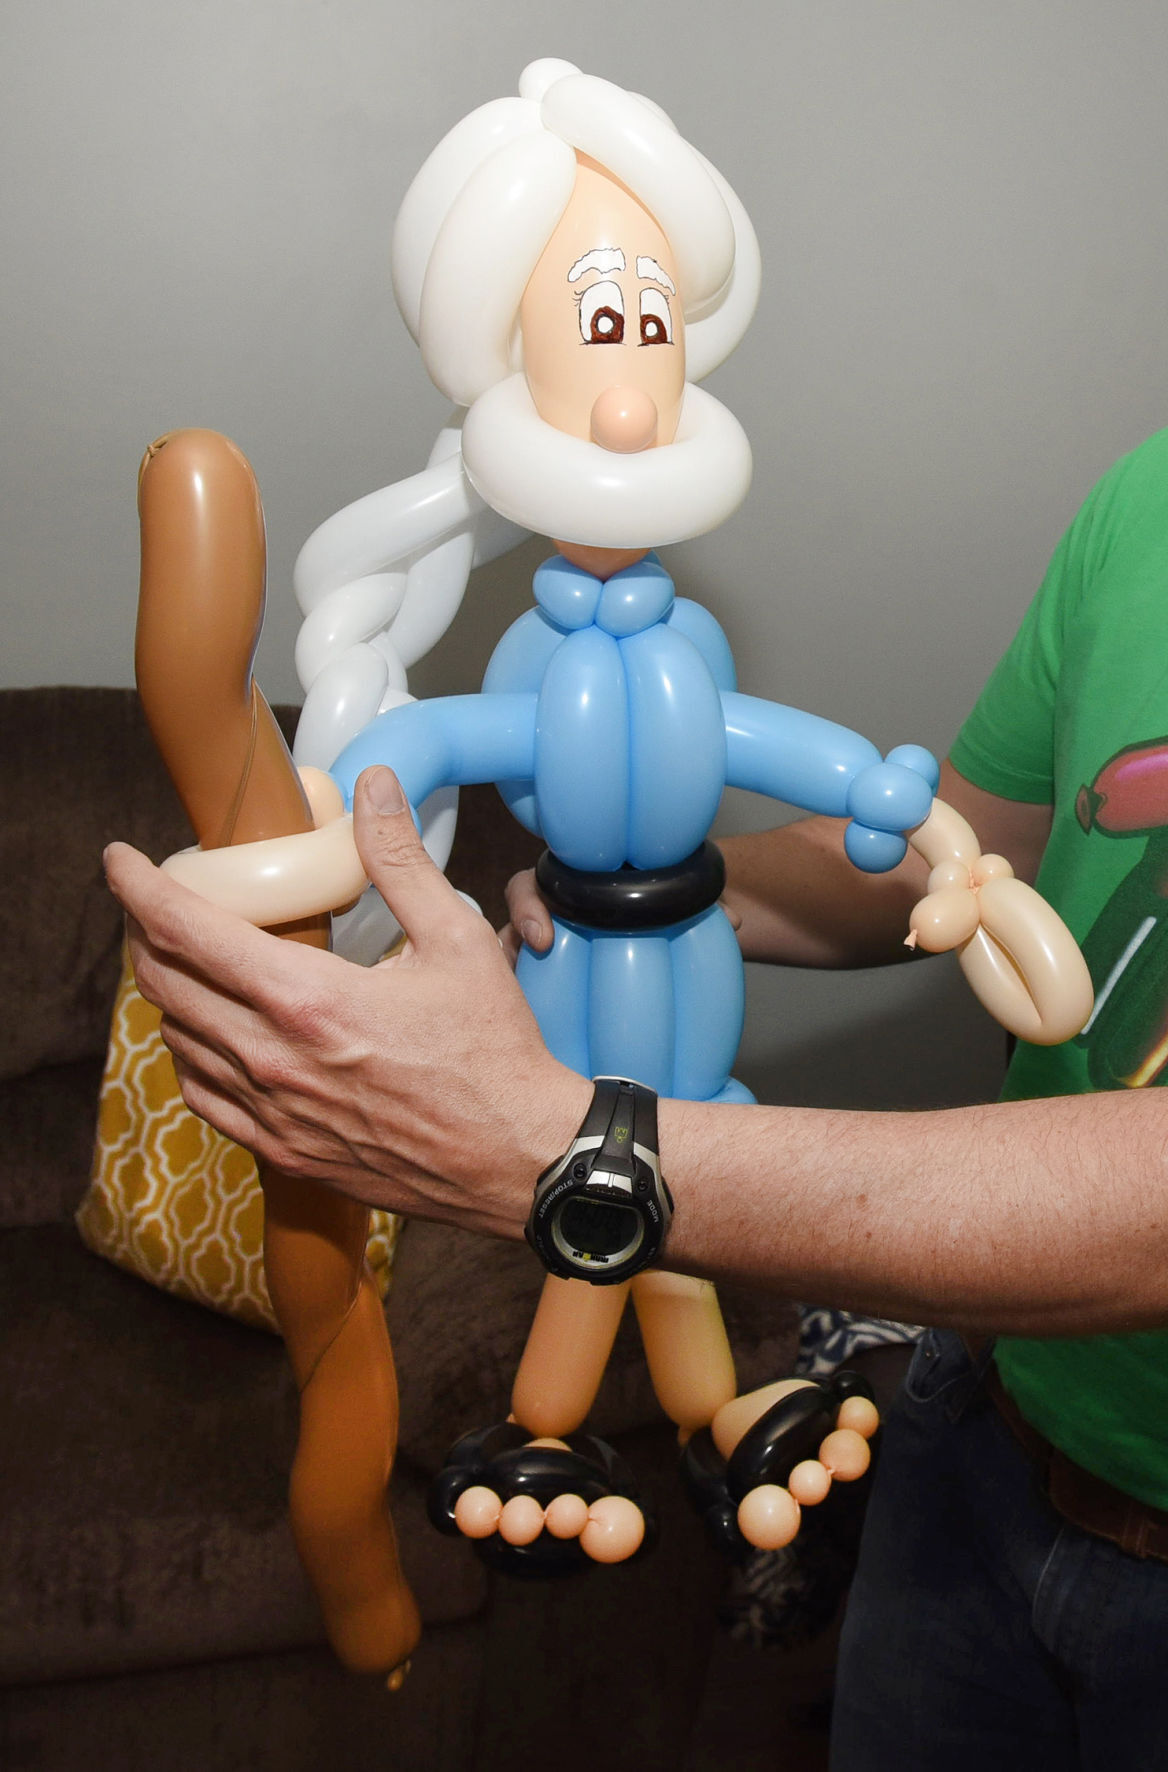 Twisting and Turning: Balloon artist turns talent into ministry